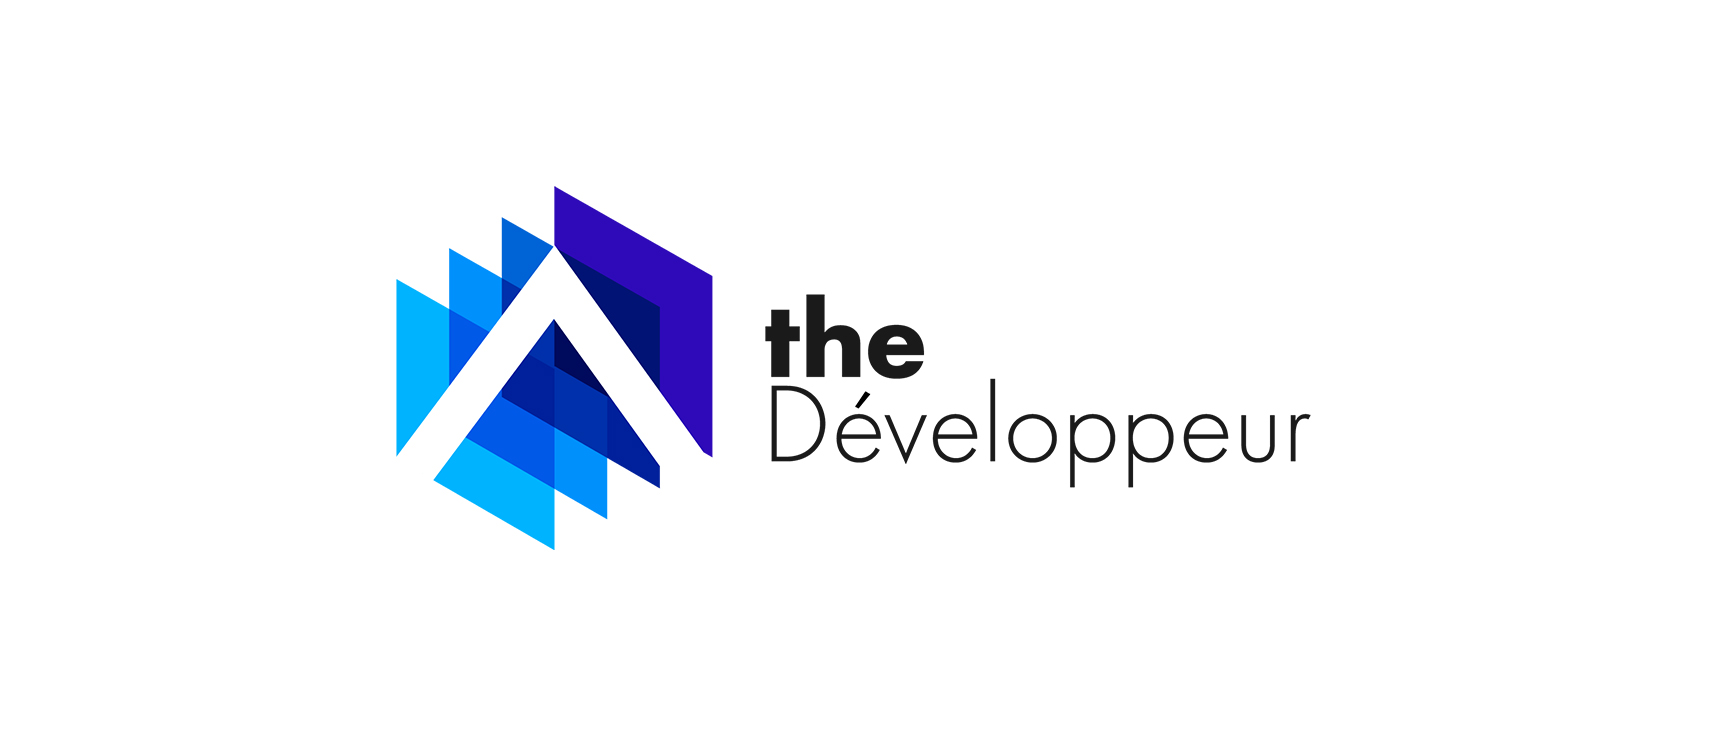 The Developpeur